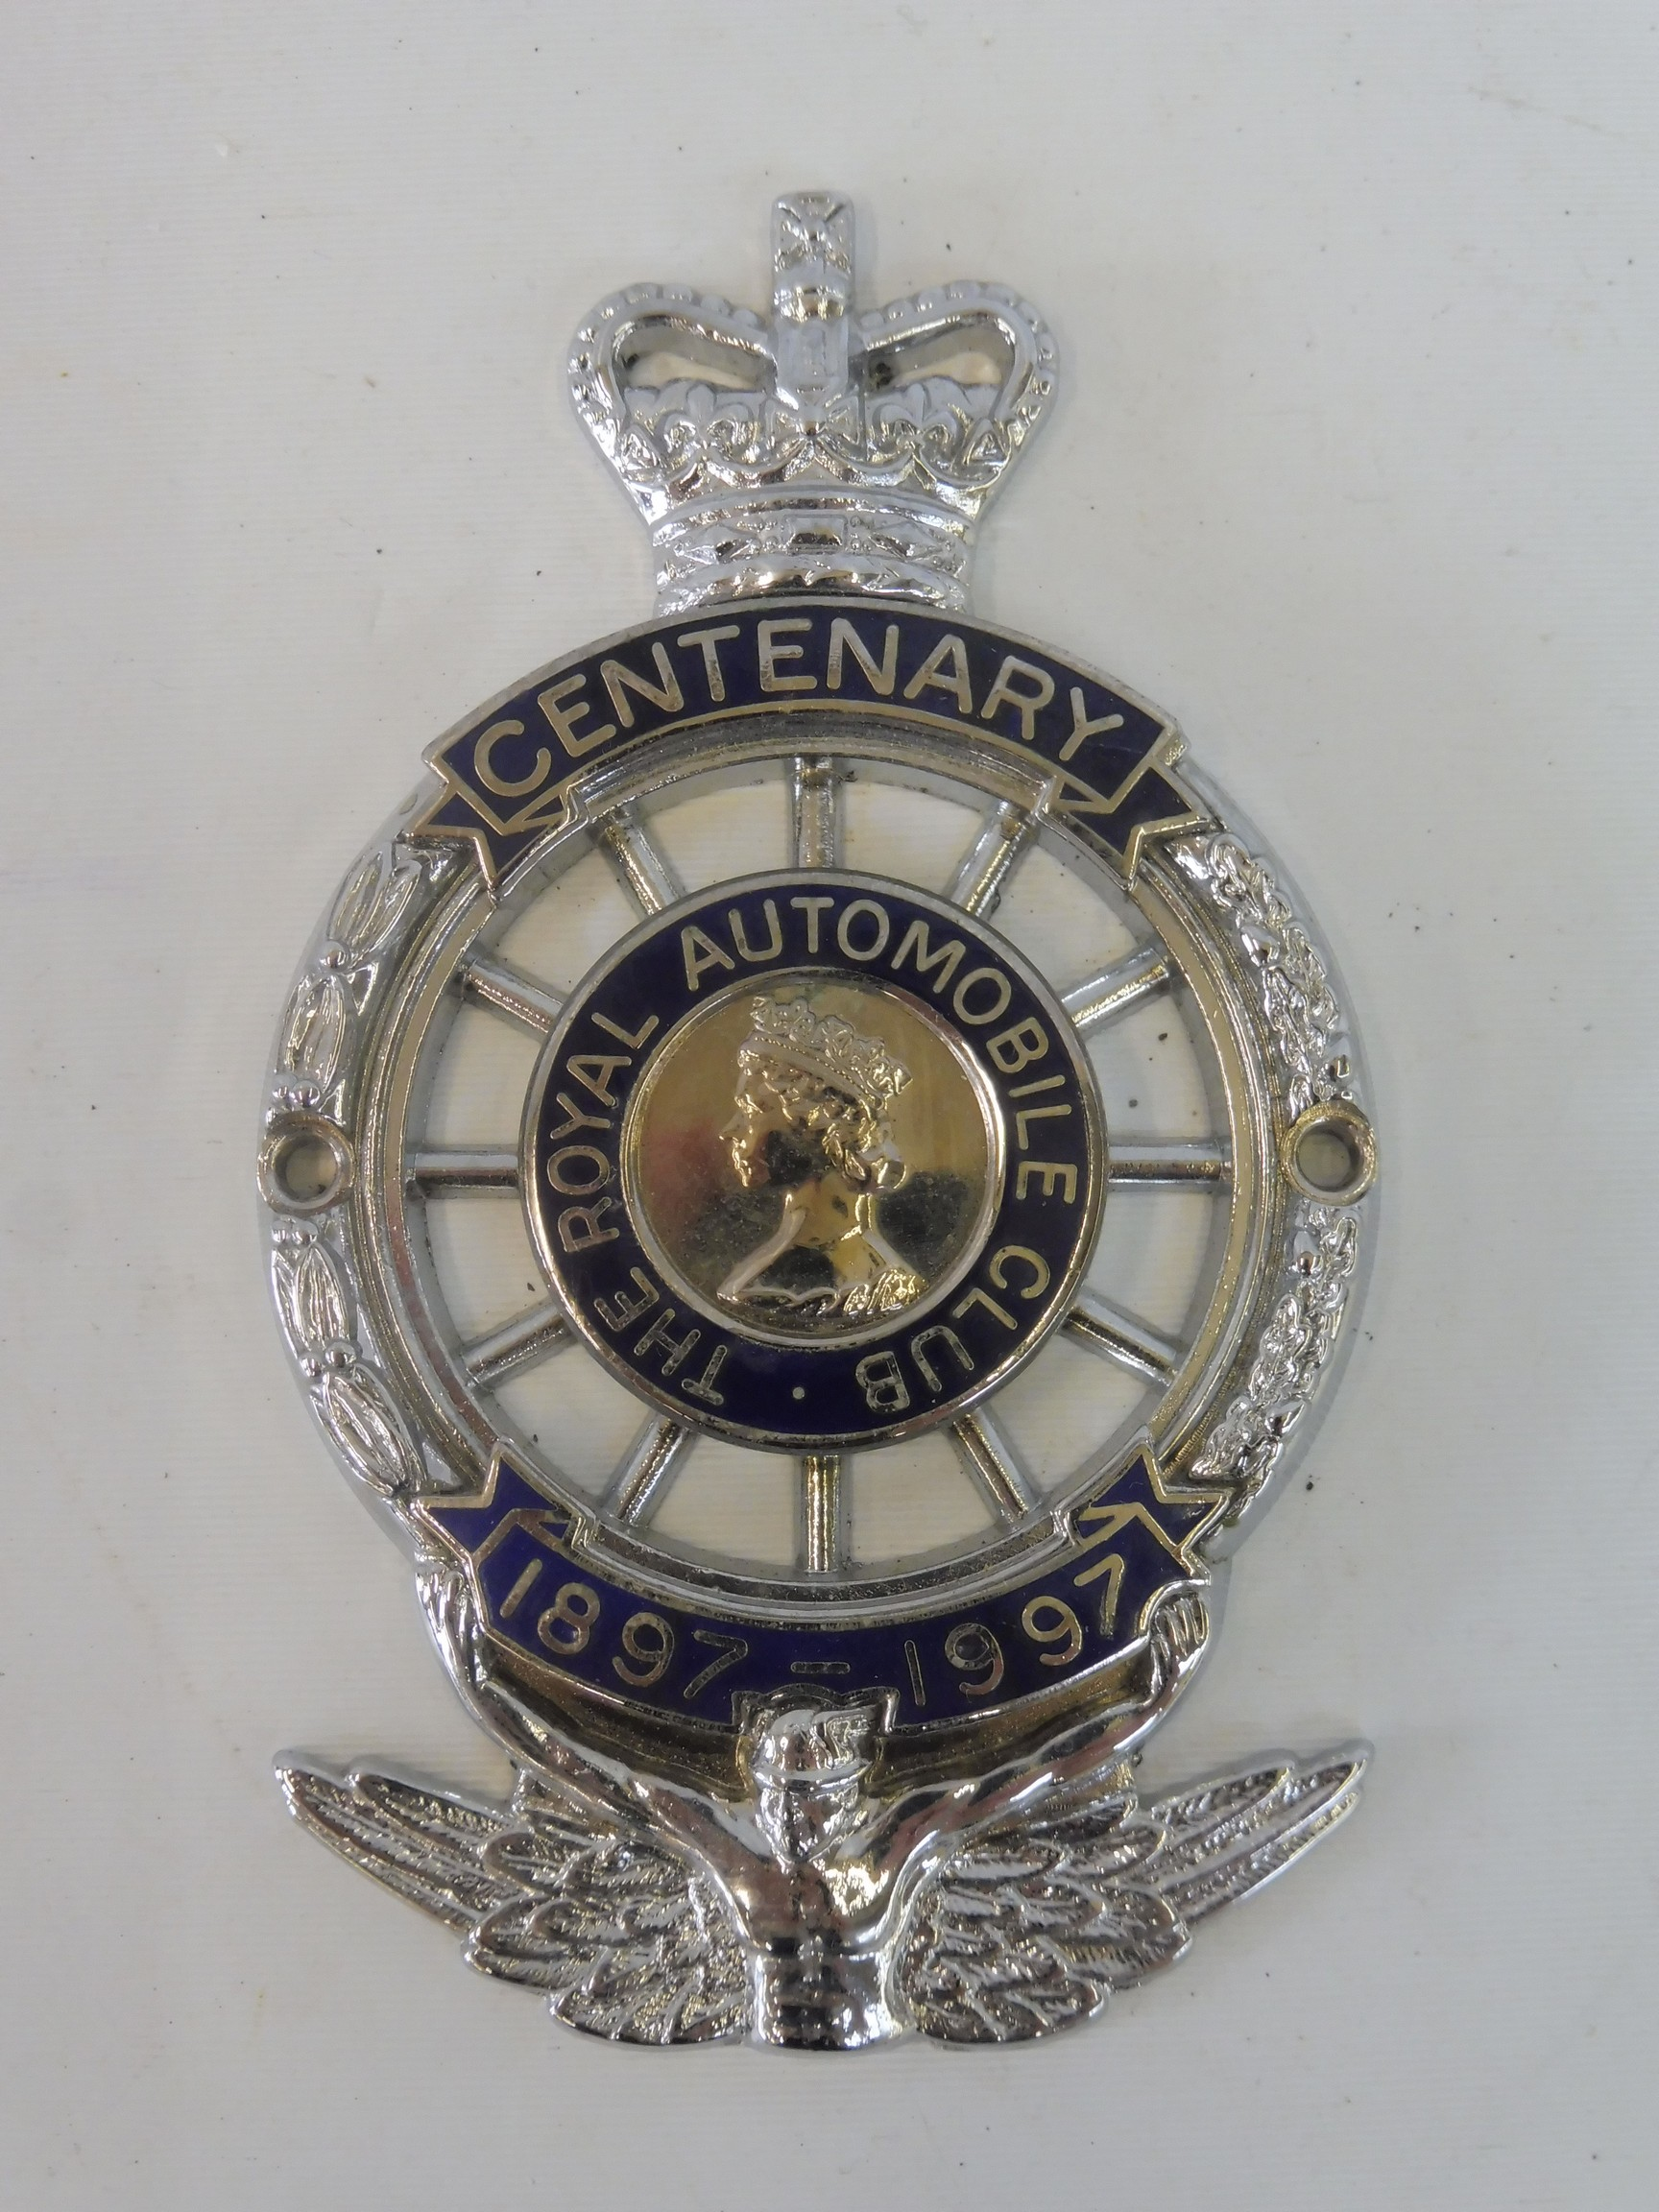 A boxed Royal Automobile Club Centenary badge, full member type 1.